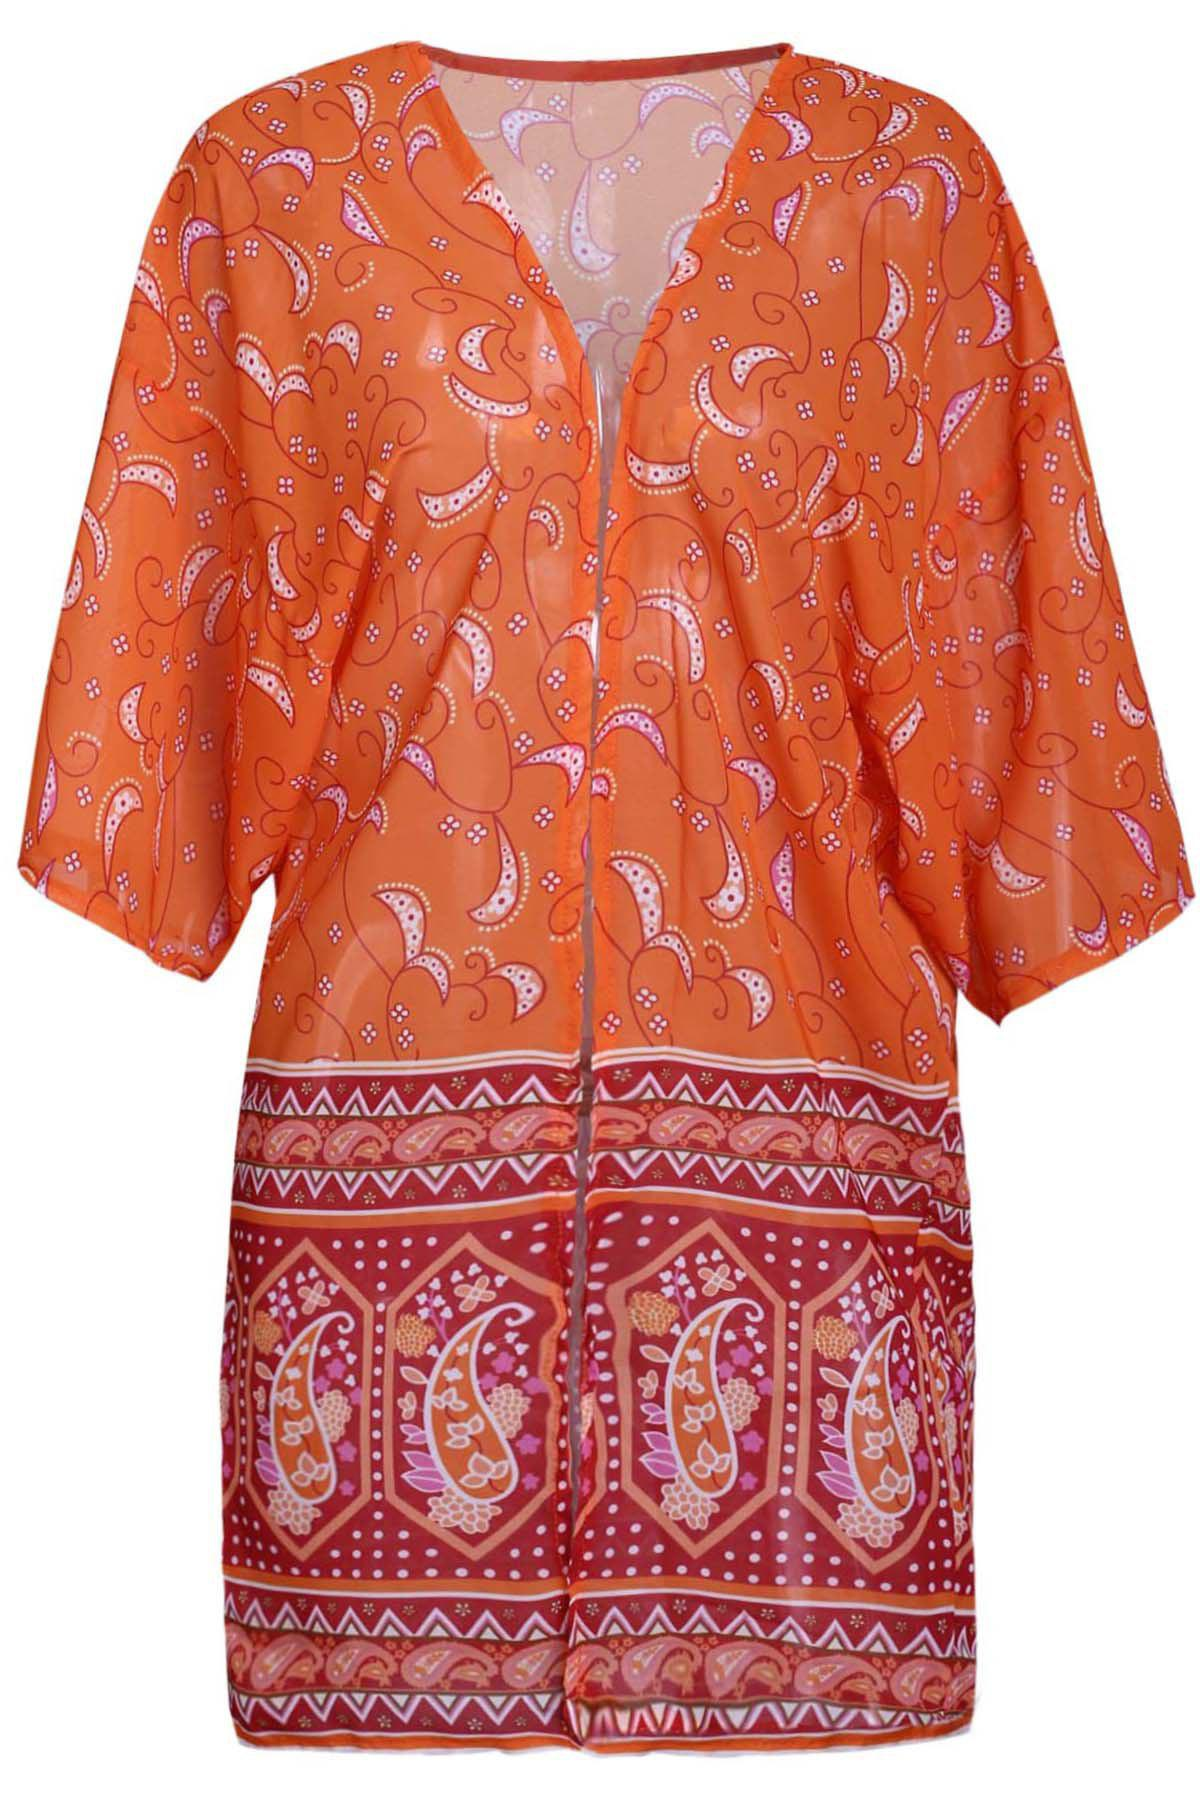 Chic Cashew Print Collarless 3/4 Sleeve Chiffon Kimono For Women - ORANGE S